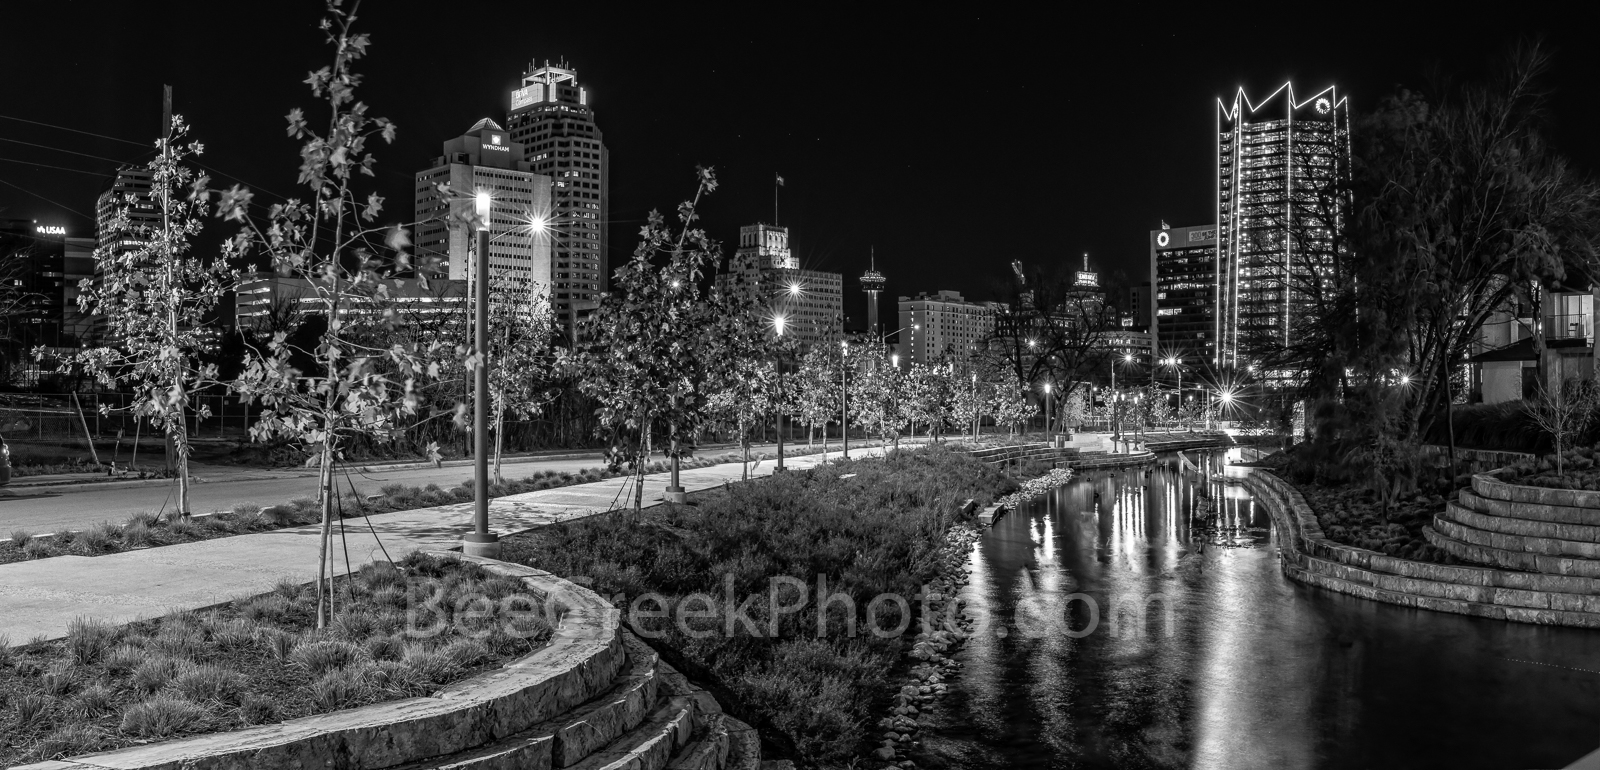 San Antonio, Frost Tower, San Pedro Creek, BW, black and white, reflections, water, Frost Tower, Tower of Americas, Drury Hotel, Wydam Hotel, BBVa Compass bank, downtown, boardwalk, linear park,, photo